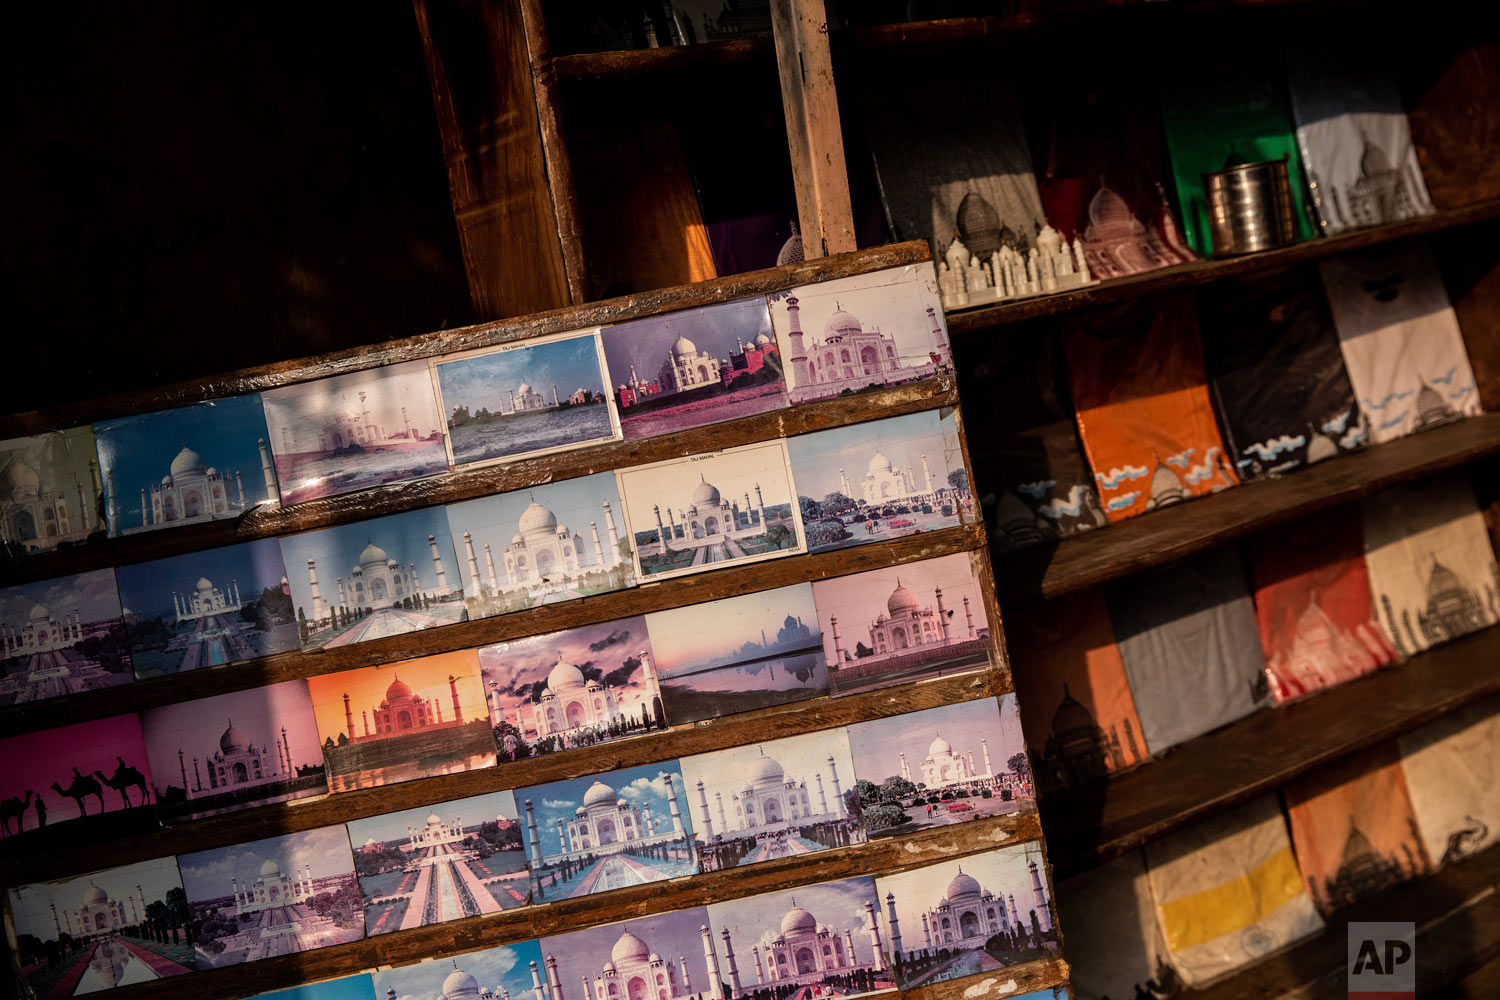 Taj Mahal postcards are displayed in a souvenir shop in Agra, India, Jan. 23, 2019. (AP Photo/Bernat Armangue)